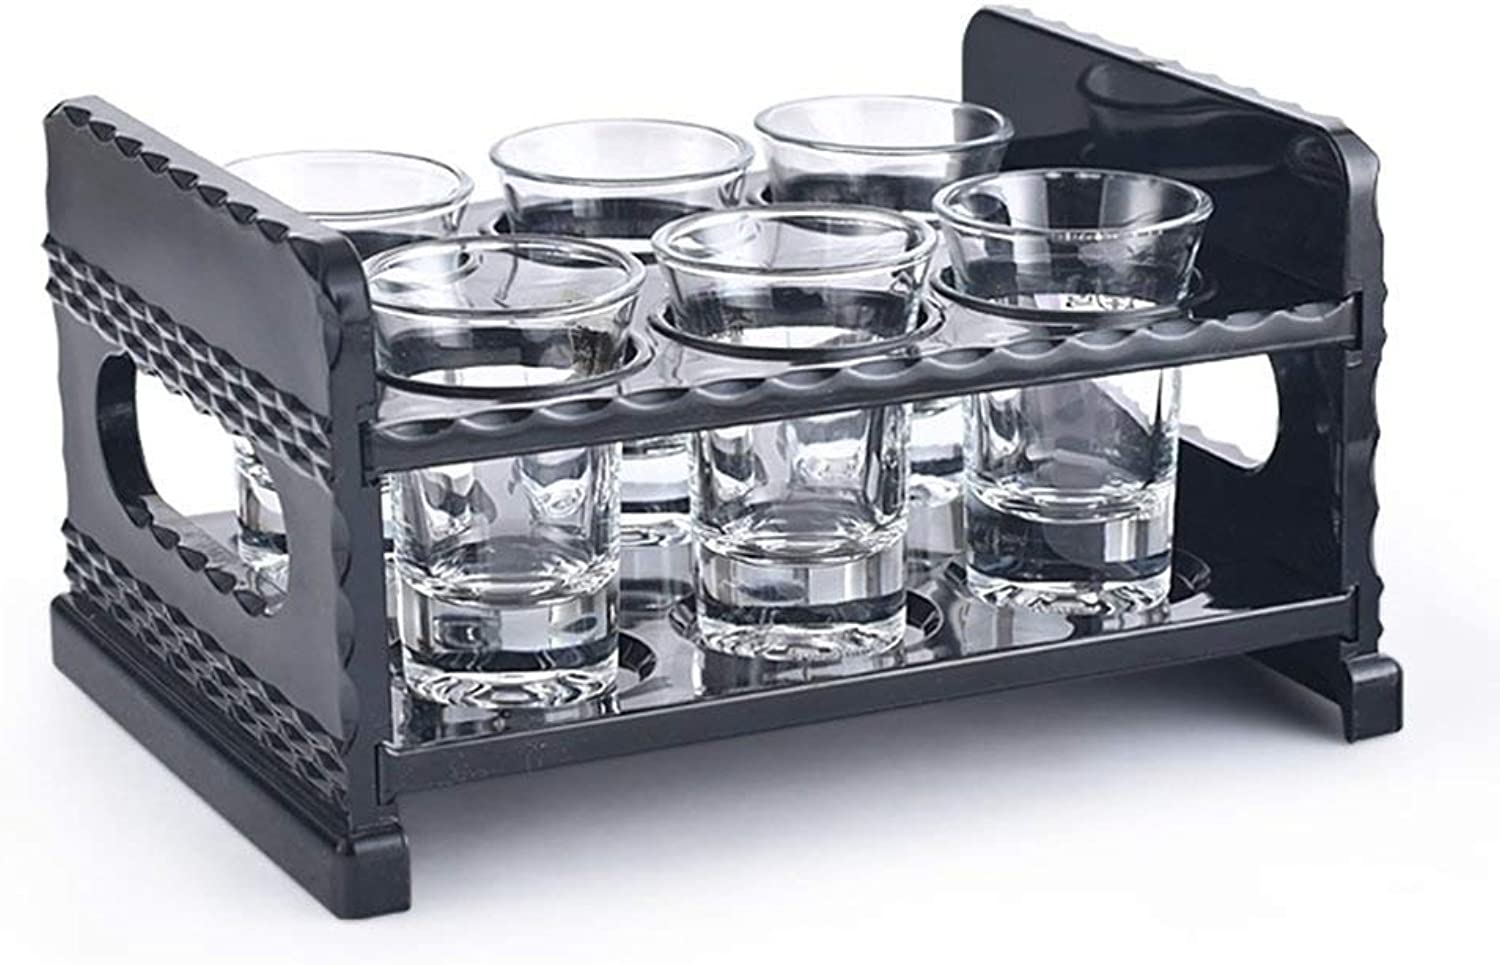 Bottle Holder Modern wind wine rack Wine Rack Acrylic Black 2 Layer Desktop Diamond Pattern Design Card Position Solid Thick Sleek for A Variety of Occasions Round Bullet Cup Cup Hole  6 Holes, 12 Hol